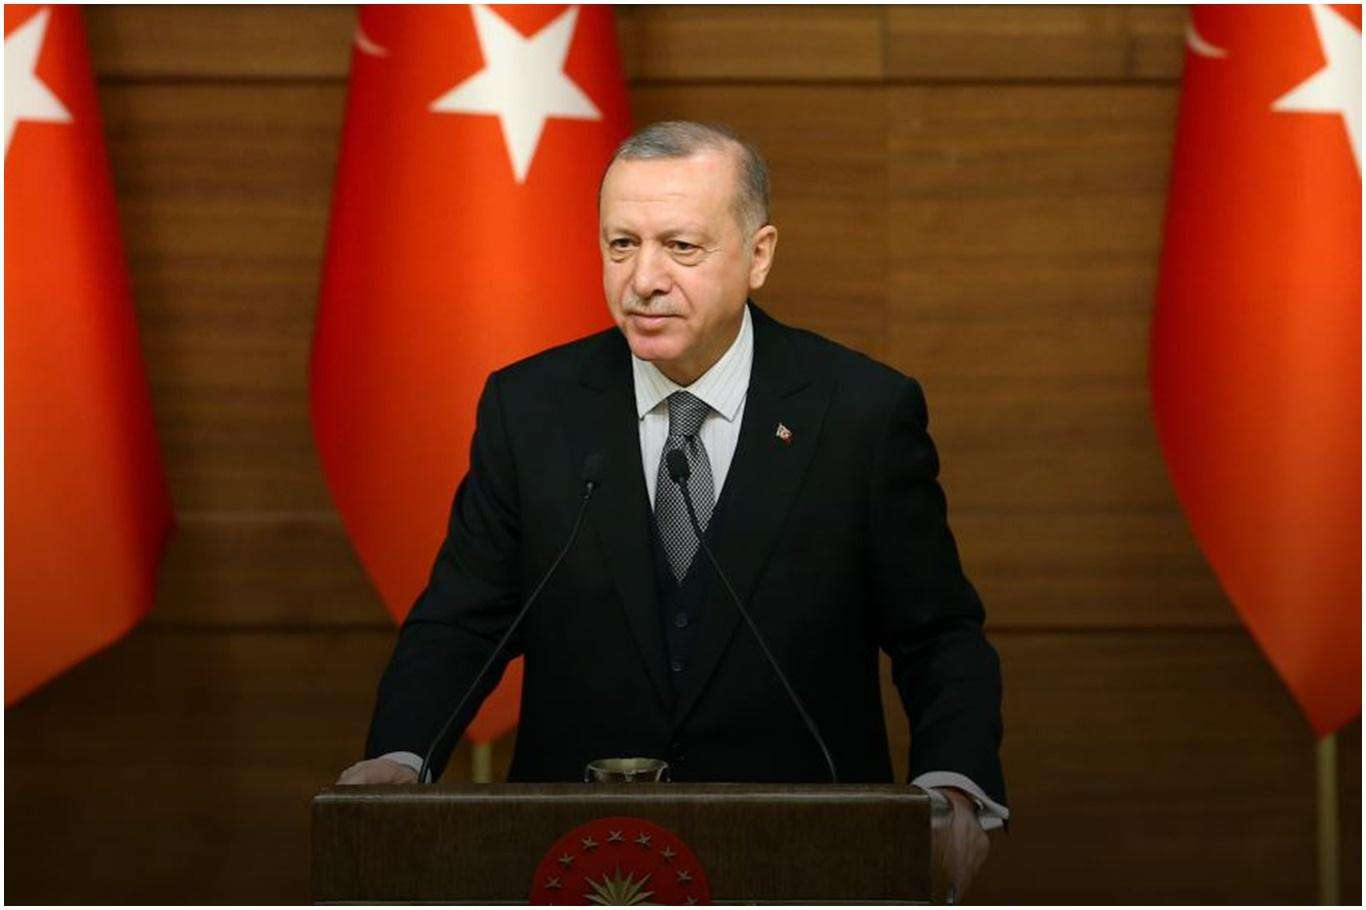 Erdoğan issues a condolence message on the passing of Prince Philip